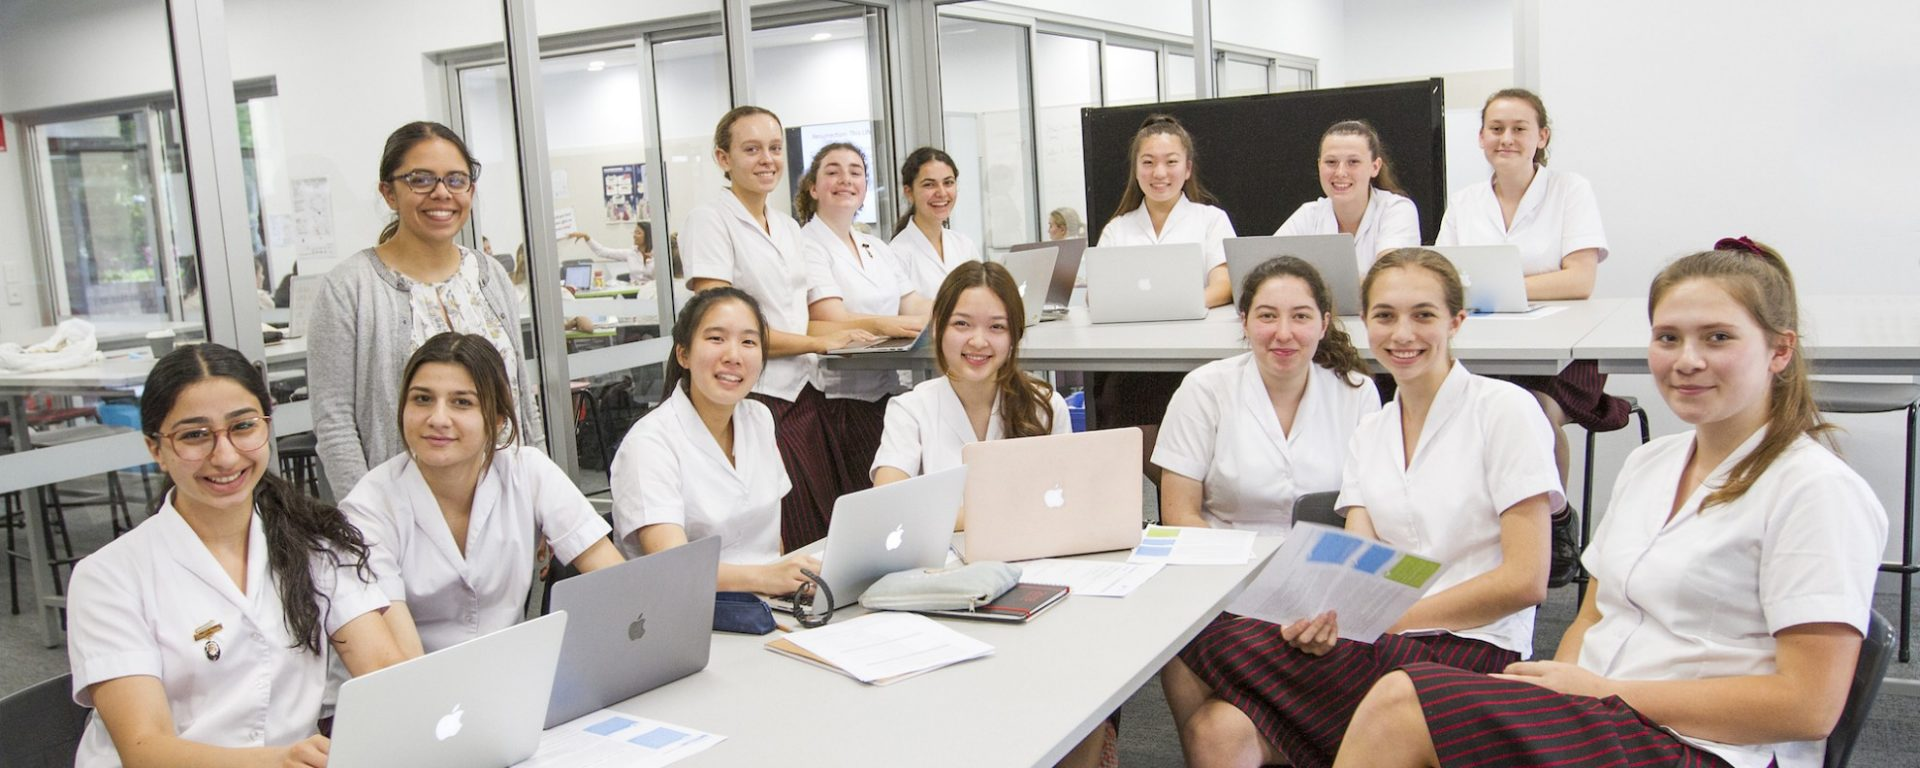 International Baccalaureate Diploma Programme featured image